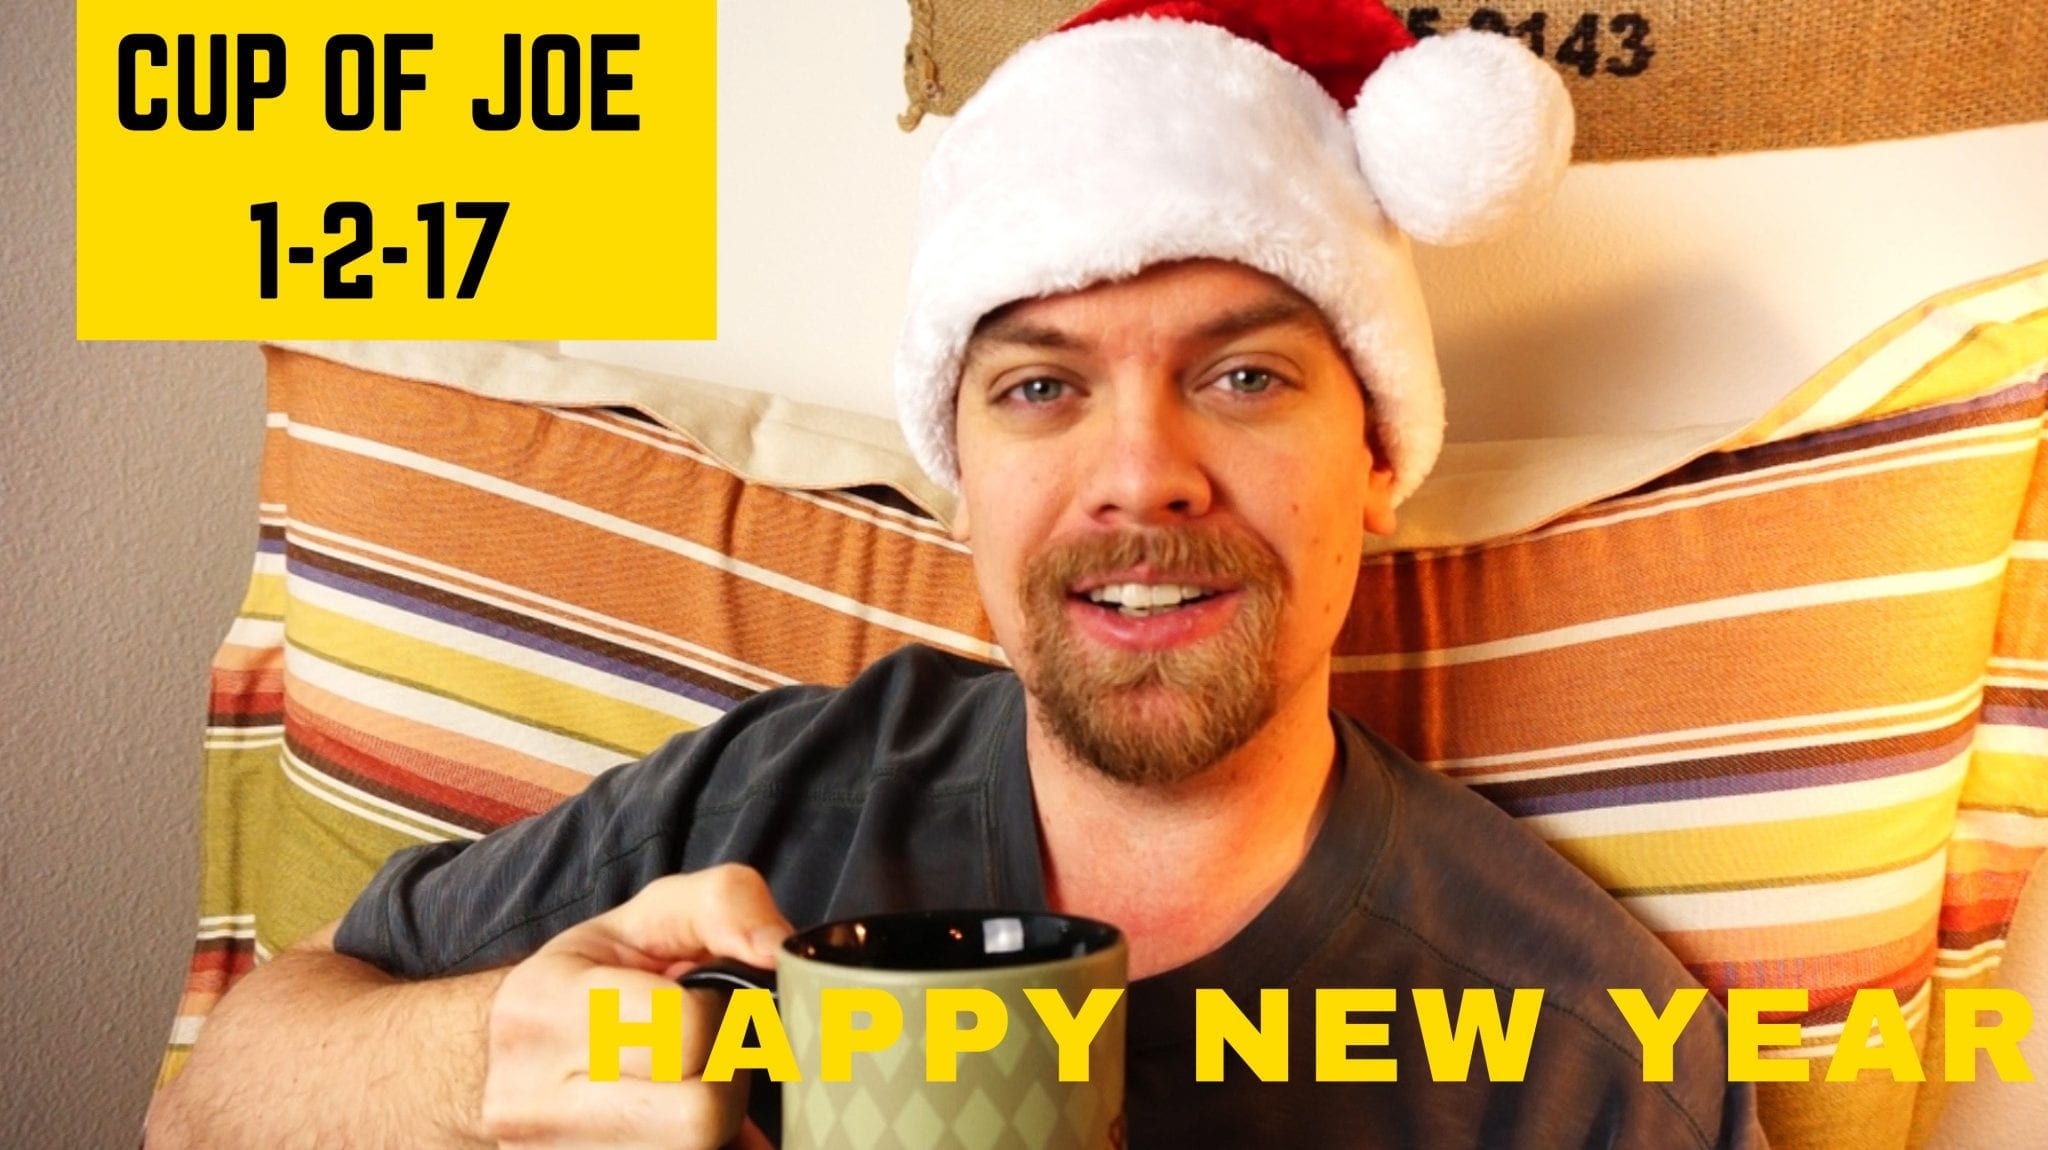 Happy New Year - Cup of Joe - Coffee Lovers Magazine